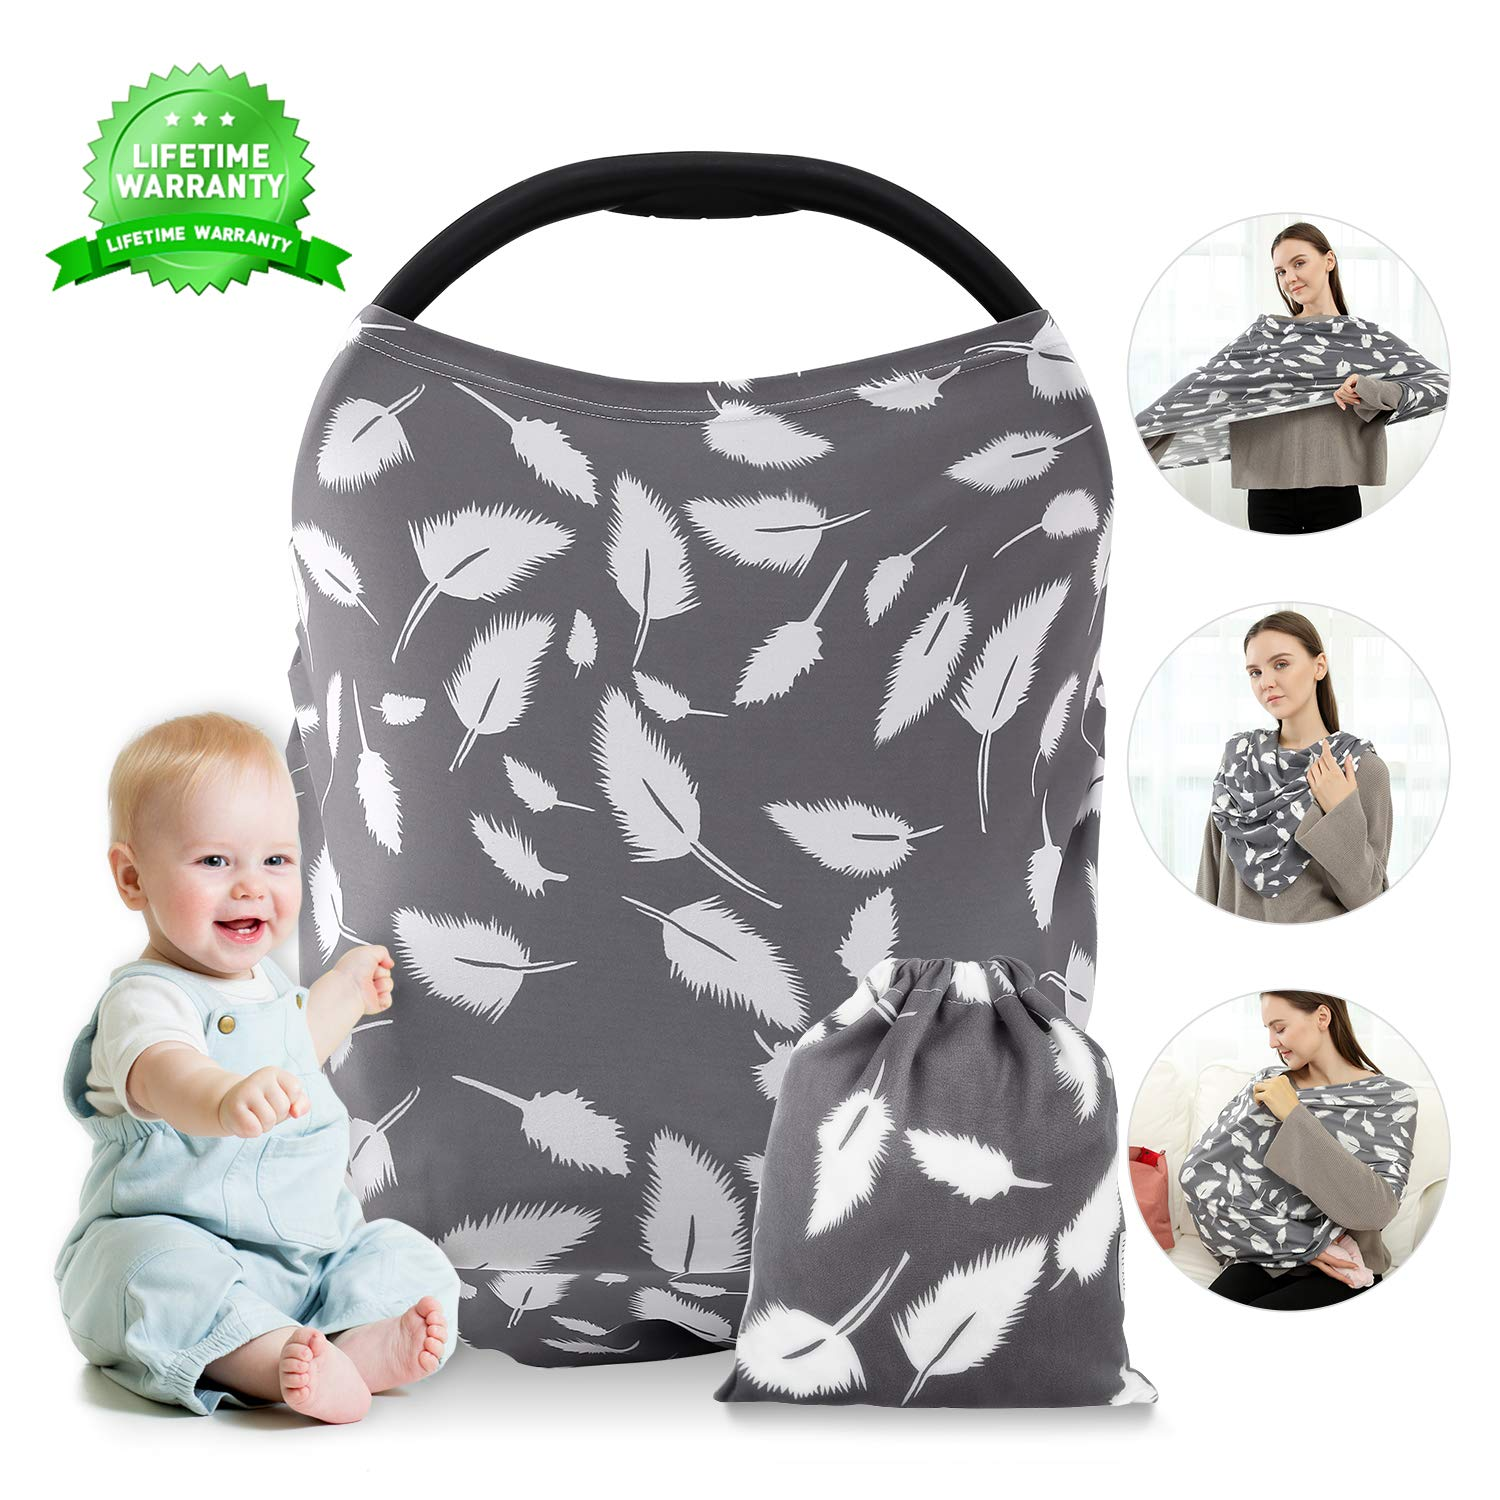 Nursing Cover, Breastfeeding Cover, Carseat Canopy, Car Seat Covers for Babies Stretchy Premium Soft Cover with Multi-Use for Stroller, Scarf, Shopping Cart, Baby Shower Gifts for Boys&Girls (Leaves)